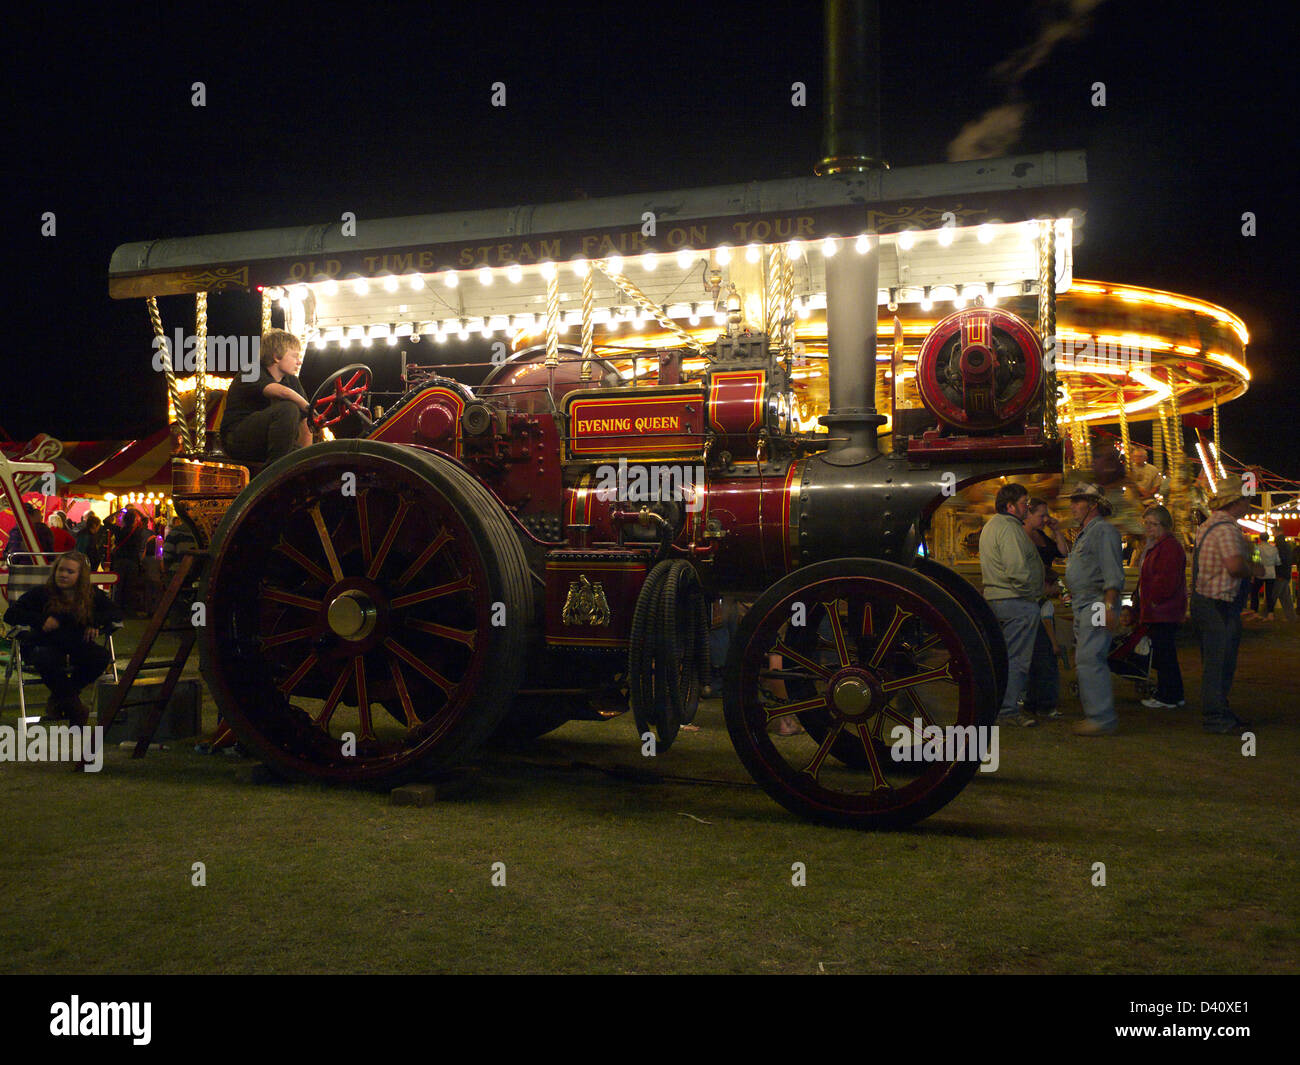 Vintage showman's engine working the fair at Lincolnshire steam and vintage rally - Stock Image